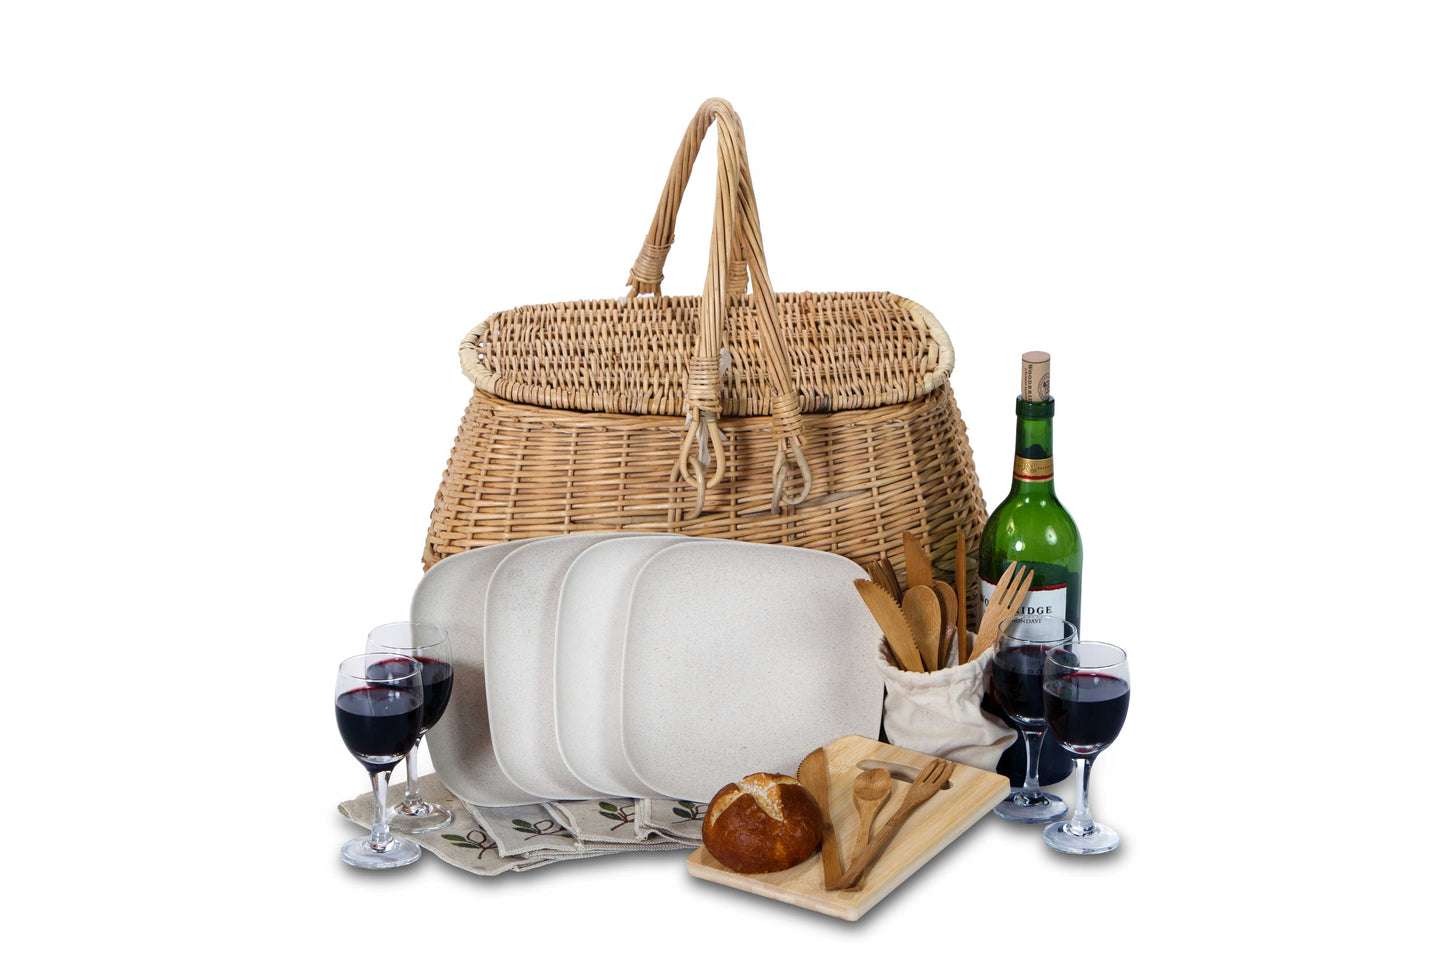 Eco Willow Picnic Basket for Four - Baskets - PICNIC